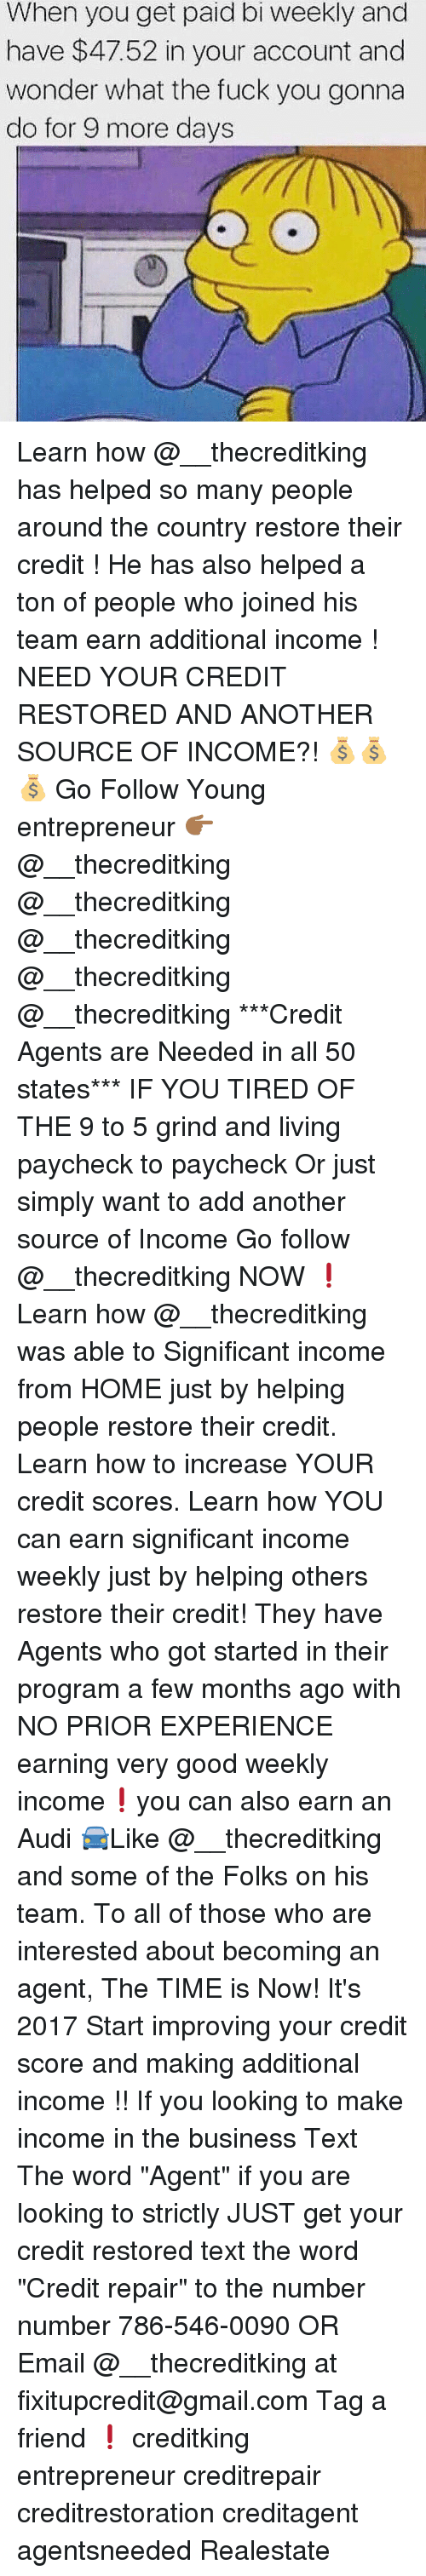 """Memes, Audi, and Credit Score: When you get paid bi weekly and  have $47.52 in your account and  wonder what the fuck you gonna  do for 9 more days Learn how @__thecreditking has helped so many people around the country restore their credit ! He has also helped a ton of people who joined his team earn additional income ! NEED YOUR CREDIT RESTORED AND ANOTHER SOURCE OF INCOME?! 💰💰💰 Go Follow Young entrepreneur 👉🏾@__thecreditking @__thecreditking @__thecreditking @__thecreditking @__thecreditking ***Credit Agents are Needed in all 50 states*** IF YOU TIRED OF THE 9 to 5 grind and living paycheck to paycheck Or just simply want to add another source of Income Go follow @__thecreditking NOW ❗️Learn how @__thecreditking was able to Significant income from HOME just by helping people restore their credit. Learn how to increase YOUR credit scores. Learn how YOU can earn significant income weekly just by helping others restore their credit! They have Agents who got started in their program a few months ago with NO PRIOR EXPERIENCE earning very good weekly income❗️you can also earn an Audi 🚘Like @__thecreditking and some of the Folks on his team. To all of those who are interested about becoming an agent, The TIME is Now! It's 2017 Start improving your credit score and making additional income !! If you looking to make income in the business Text The word """"Agent"""" if you are looking to strictly JUST get your credit restored text the word """"Credit repair"""" to the number number 786-546-0090 OR Email @__thecreditking at fixitupcredit@gmail.com Tag a friend ❗️ creditking entrepreneur creditrepair creditrestoration creditagent agentsneeded Realestate"""